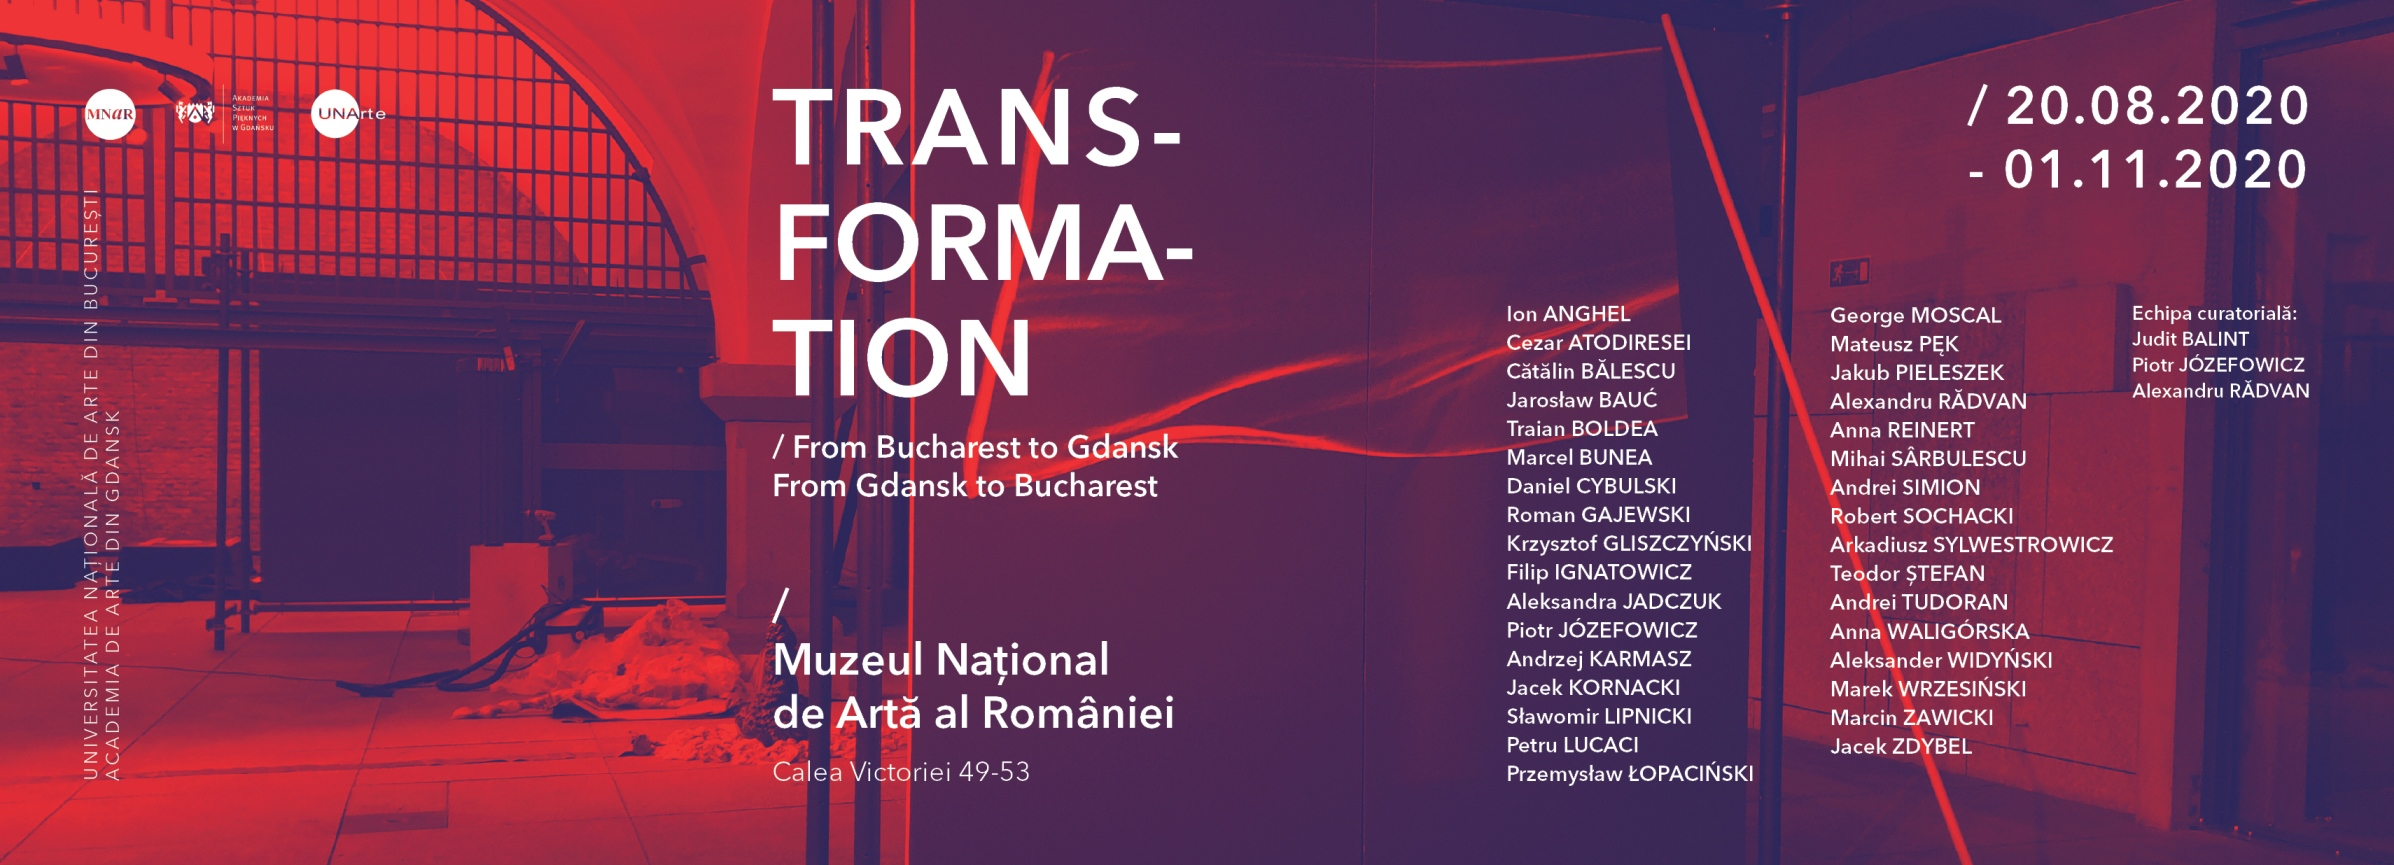 TRANSFORMATION. From Bucharest to Gdansk. From Gdansk to Bucharest